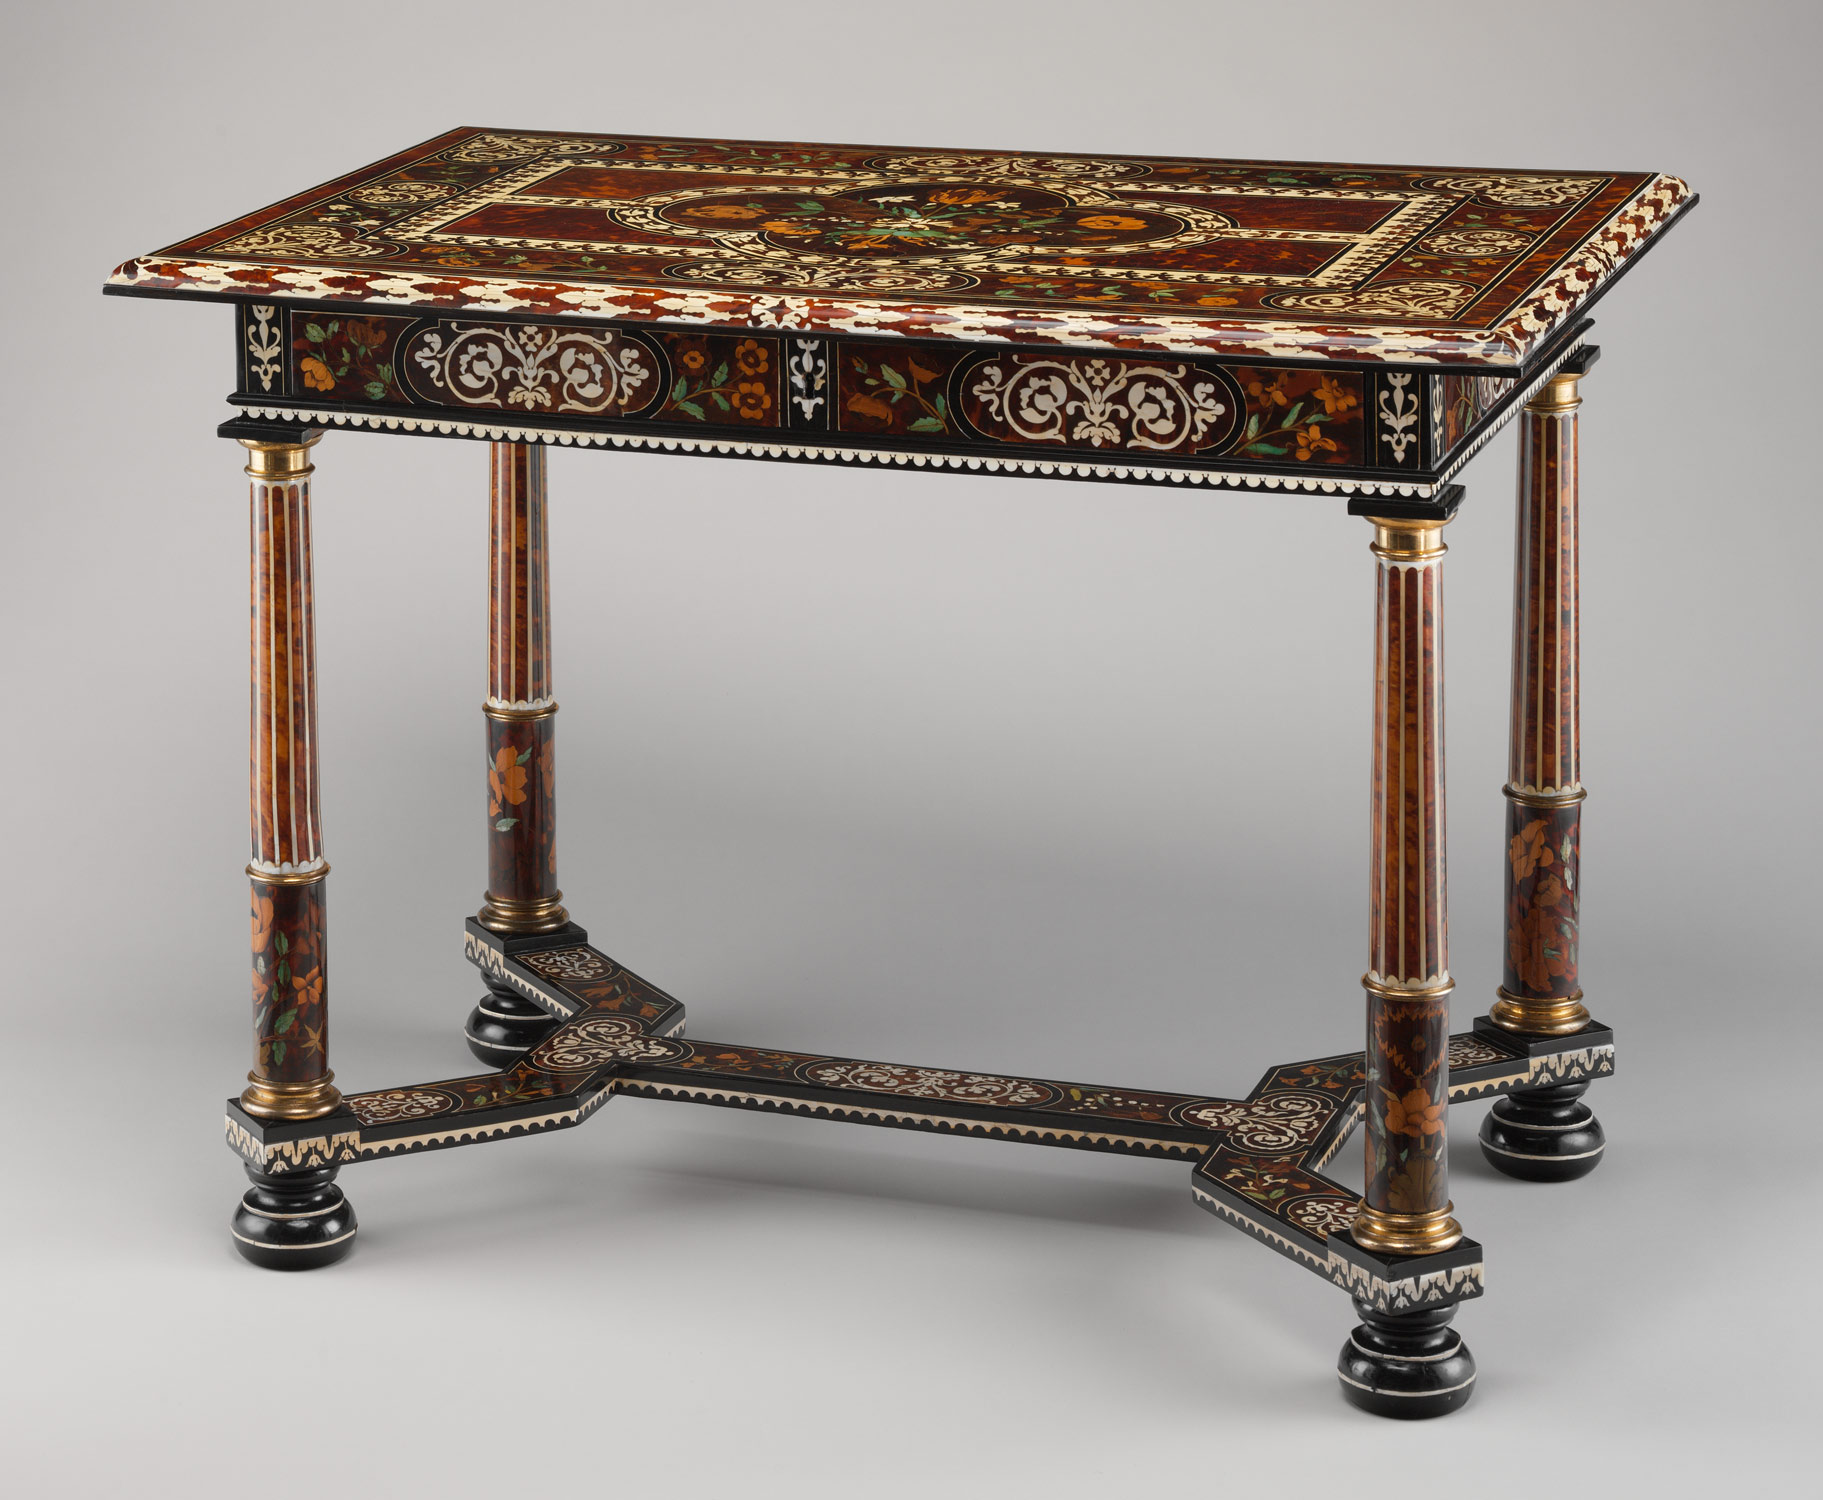 furnishings during the reign of louis xiv essay table